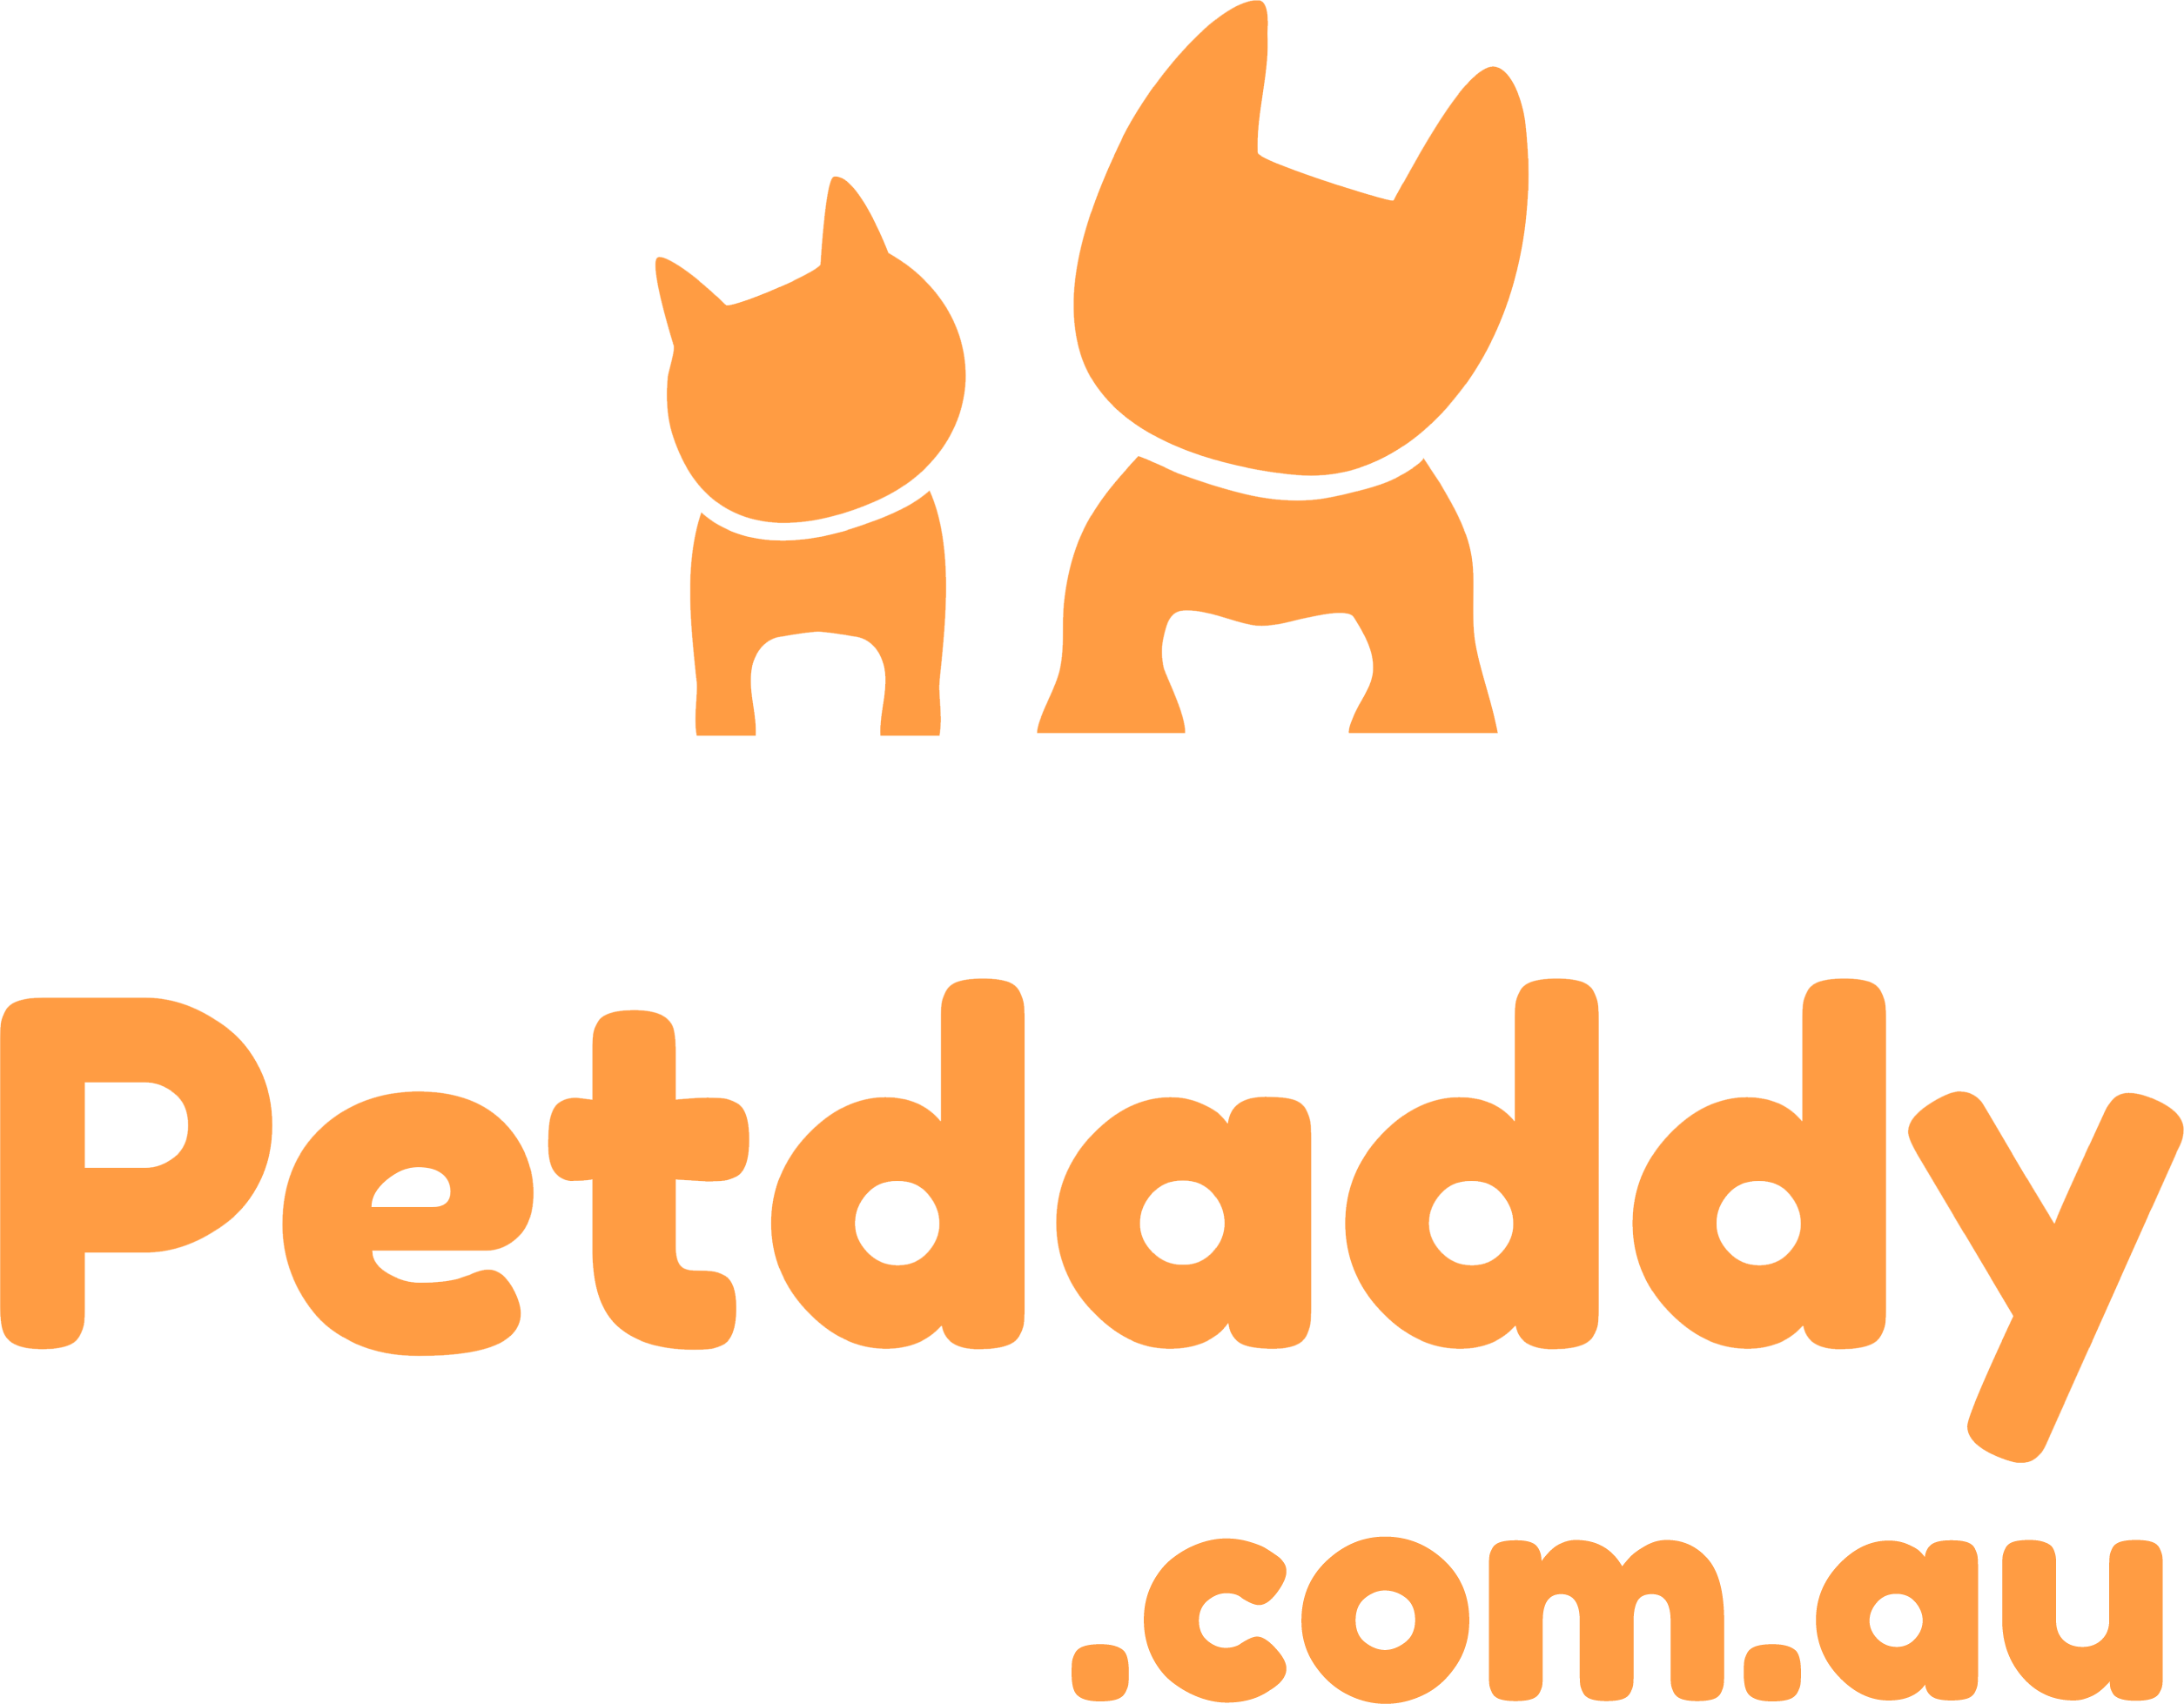 Cheapest Online Pet Shop Petdaddy.com.au